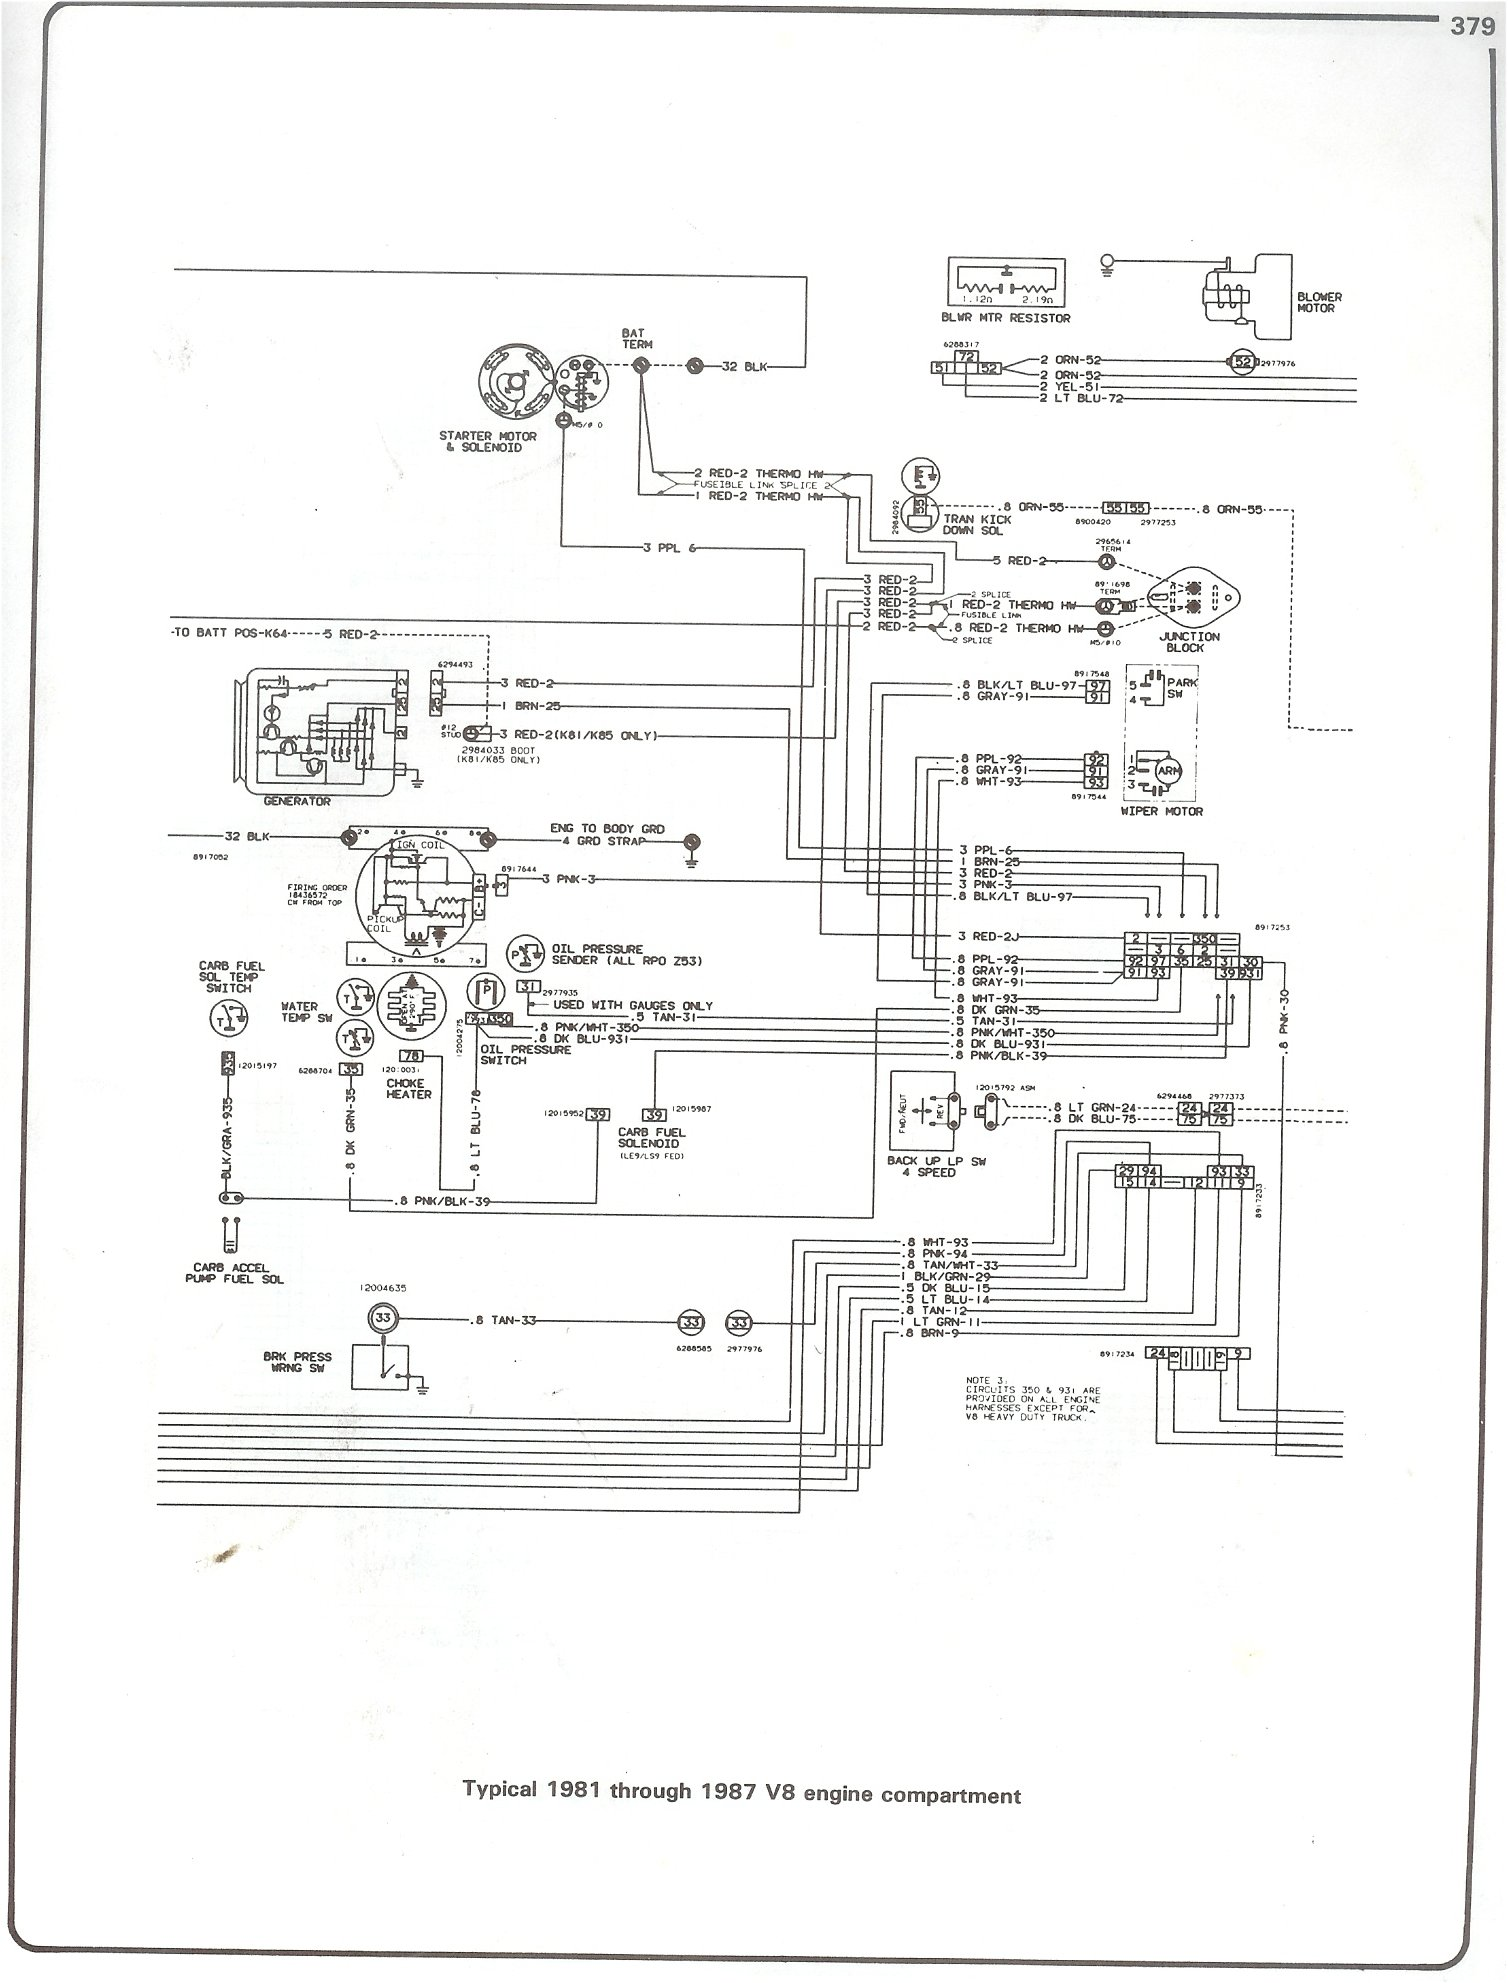 1979 Chevy C10 Wiring Diagram Another Blog About 95 Geo Tracker Fuse Panel Complete 73 87 Diagrams Rh Forum 87chevytrucks Com Truck Steering Column Turn Signal